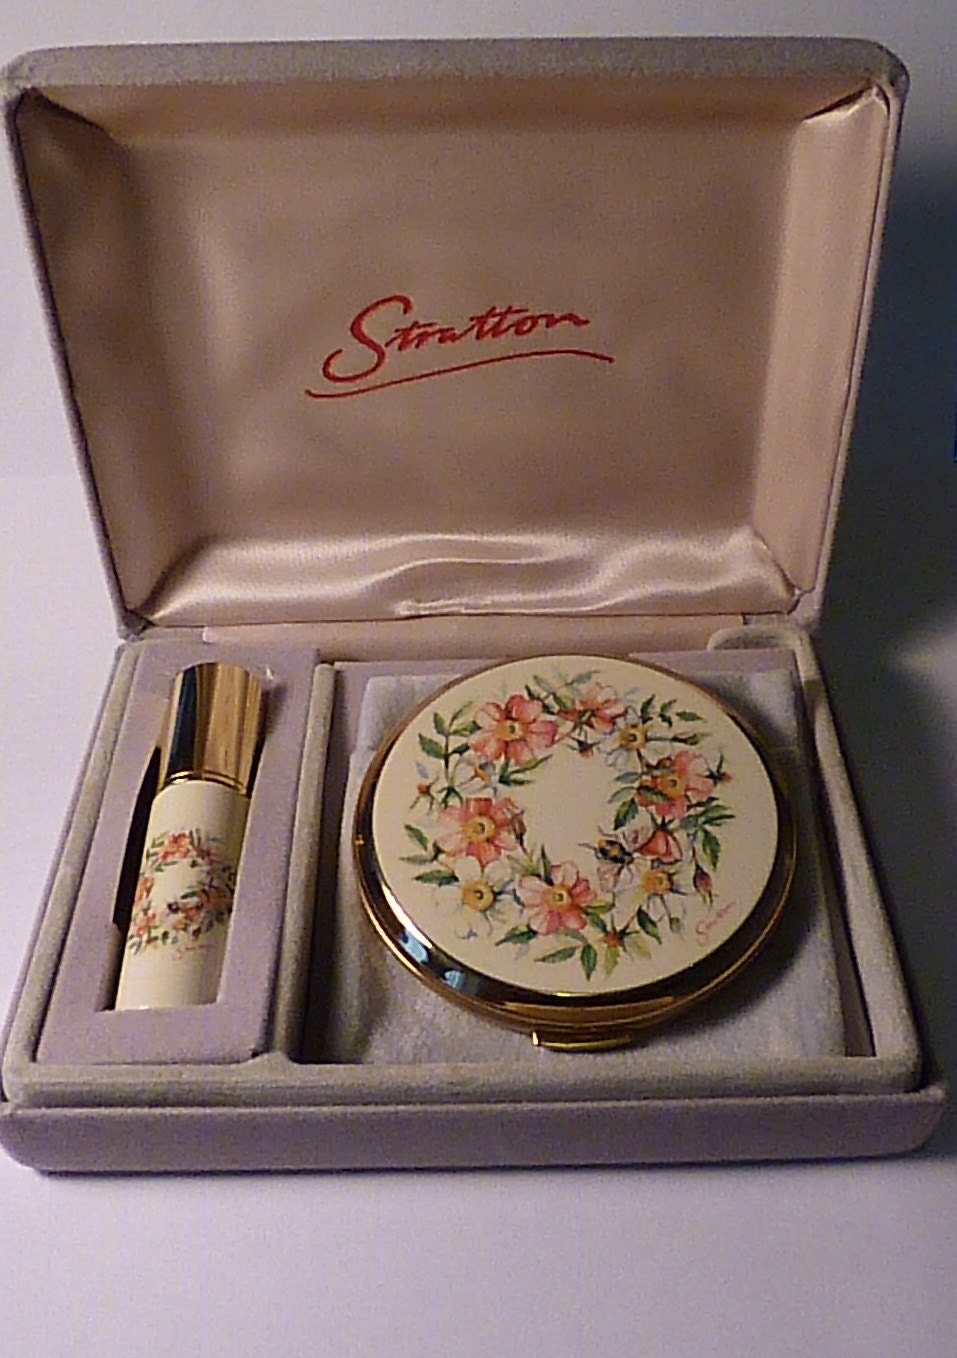 Unused compacts vintage Stratton set cased vintage Stratton sets vanity sets vintage vanity sets compacts powder compacts perfume atomizer